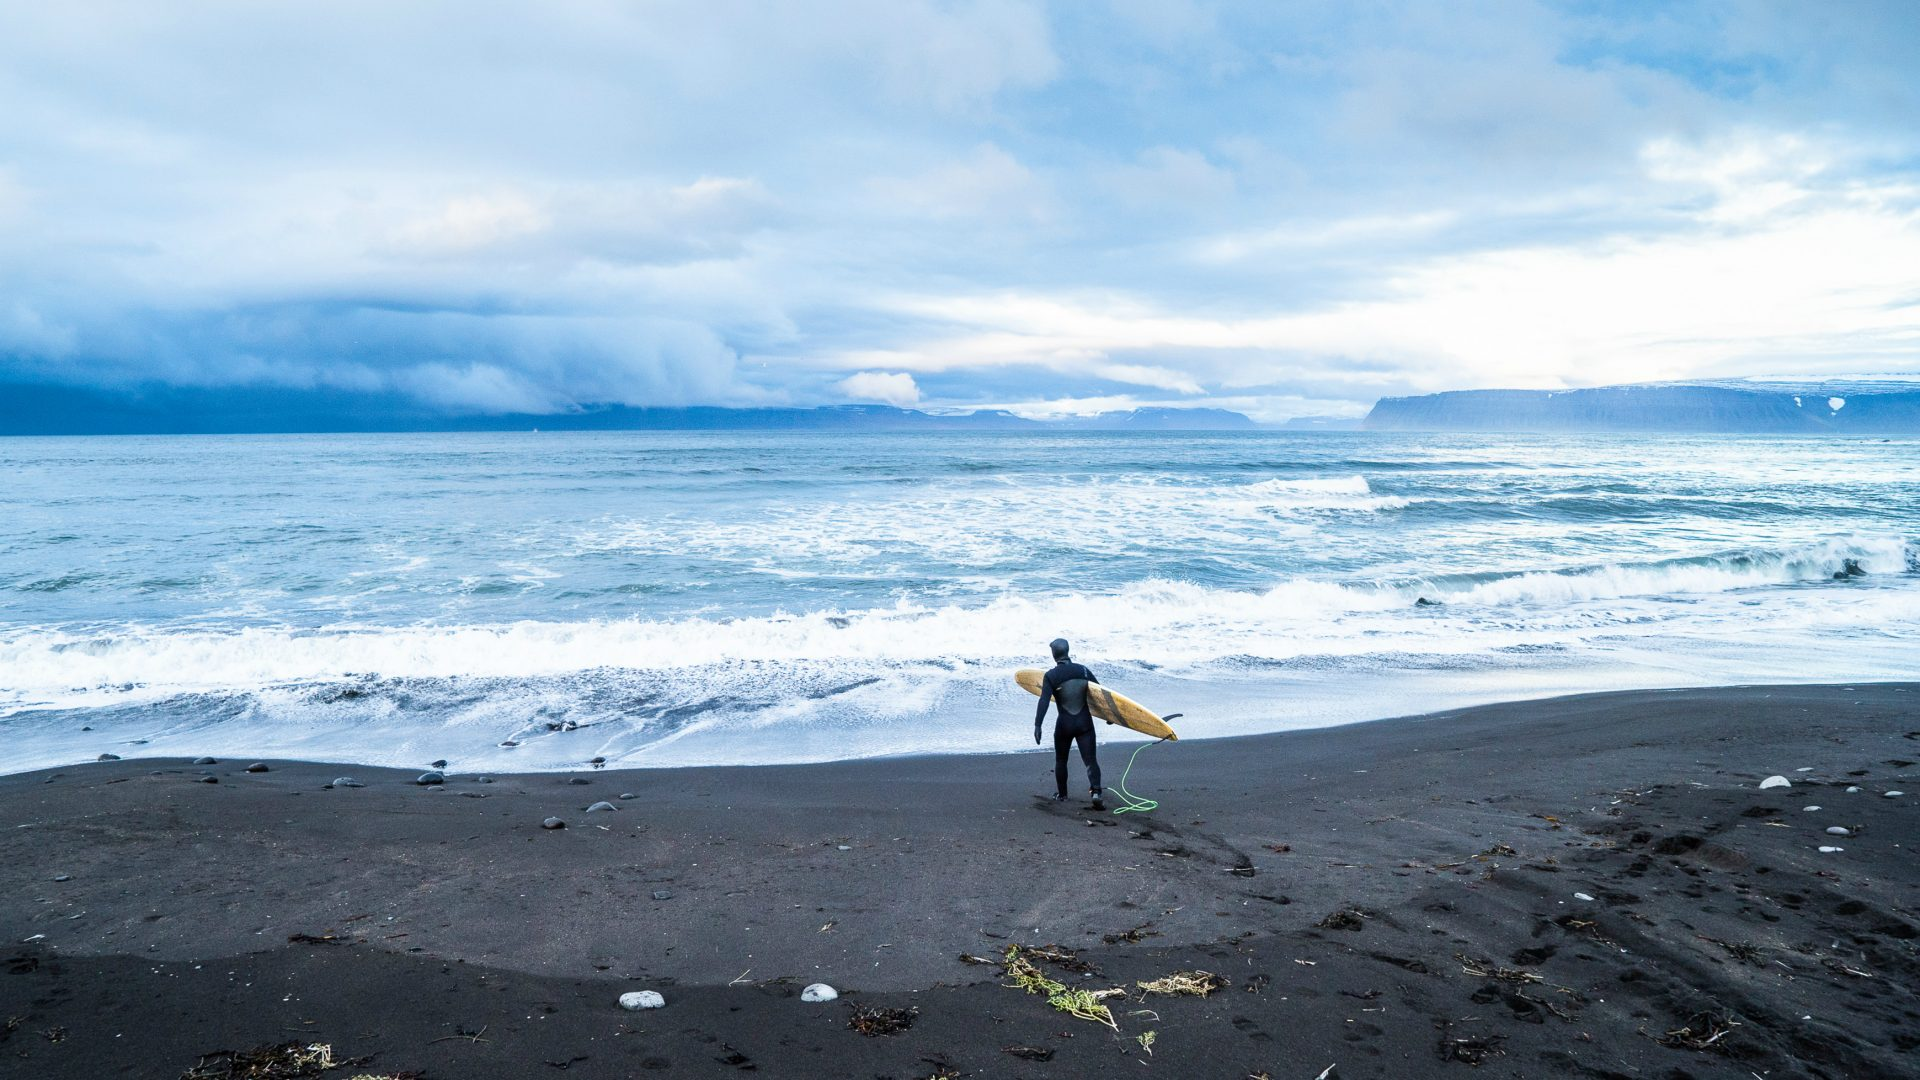 A surfer on the black sand beach in Bolungarvik, Iceland.